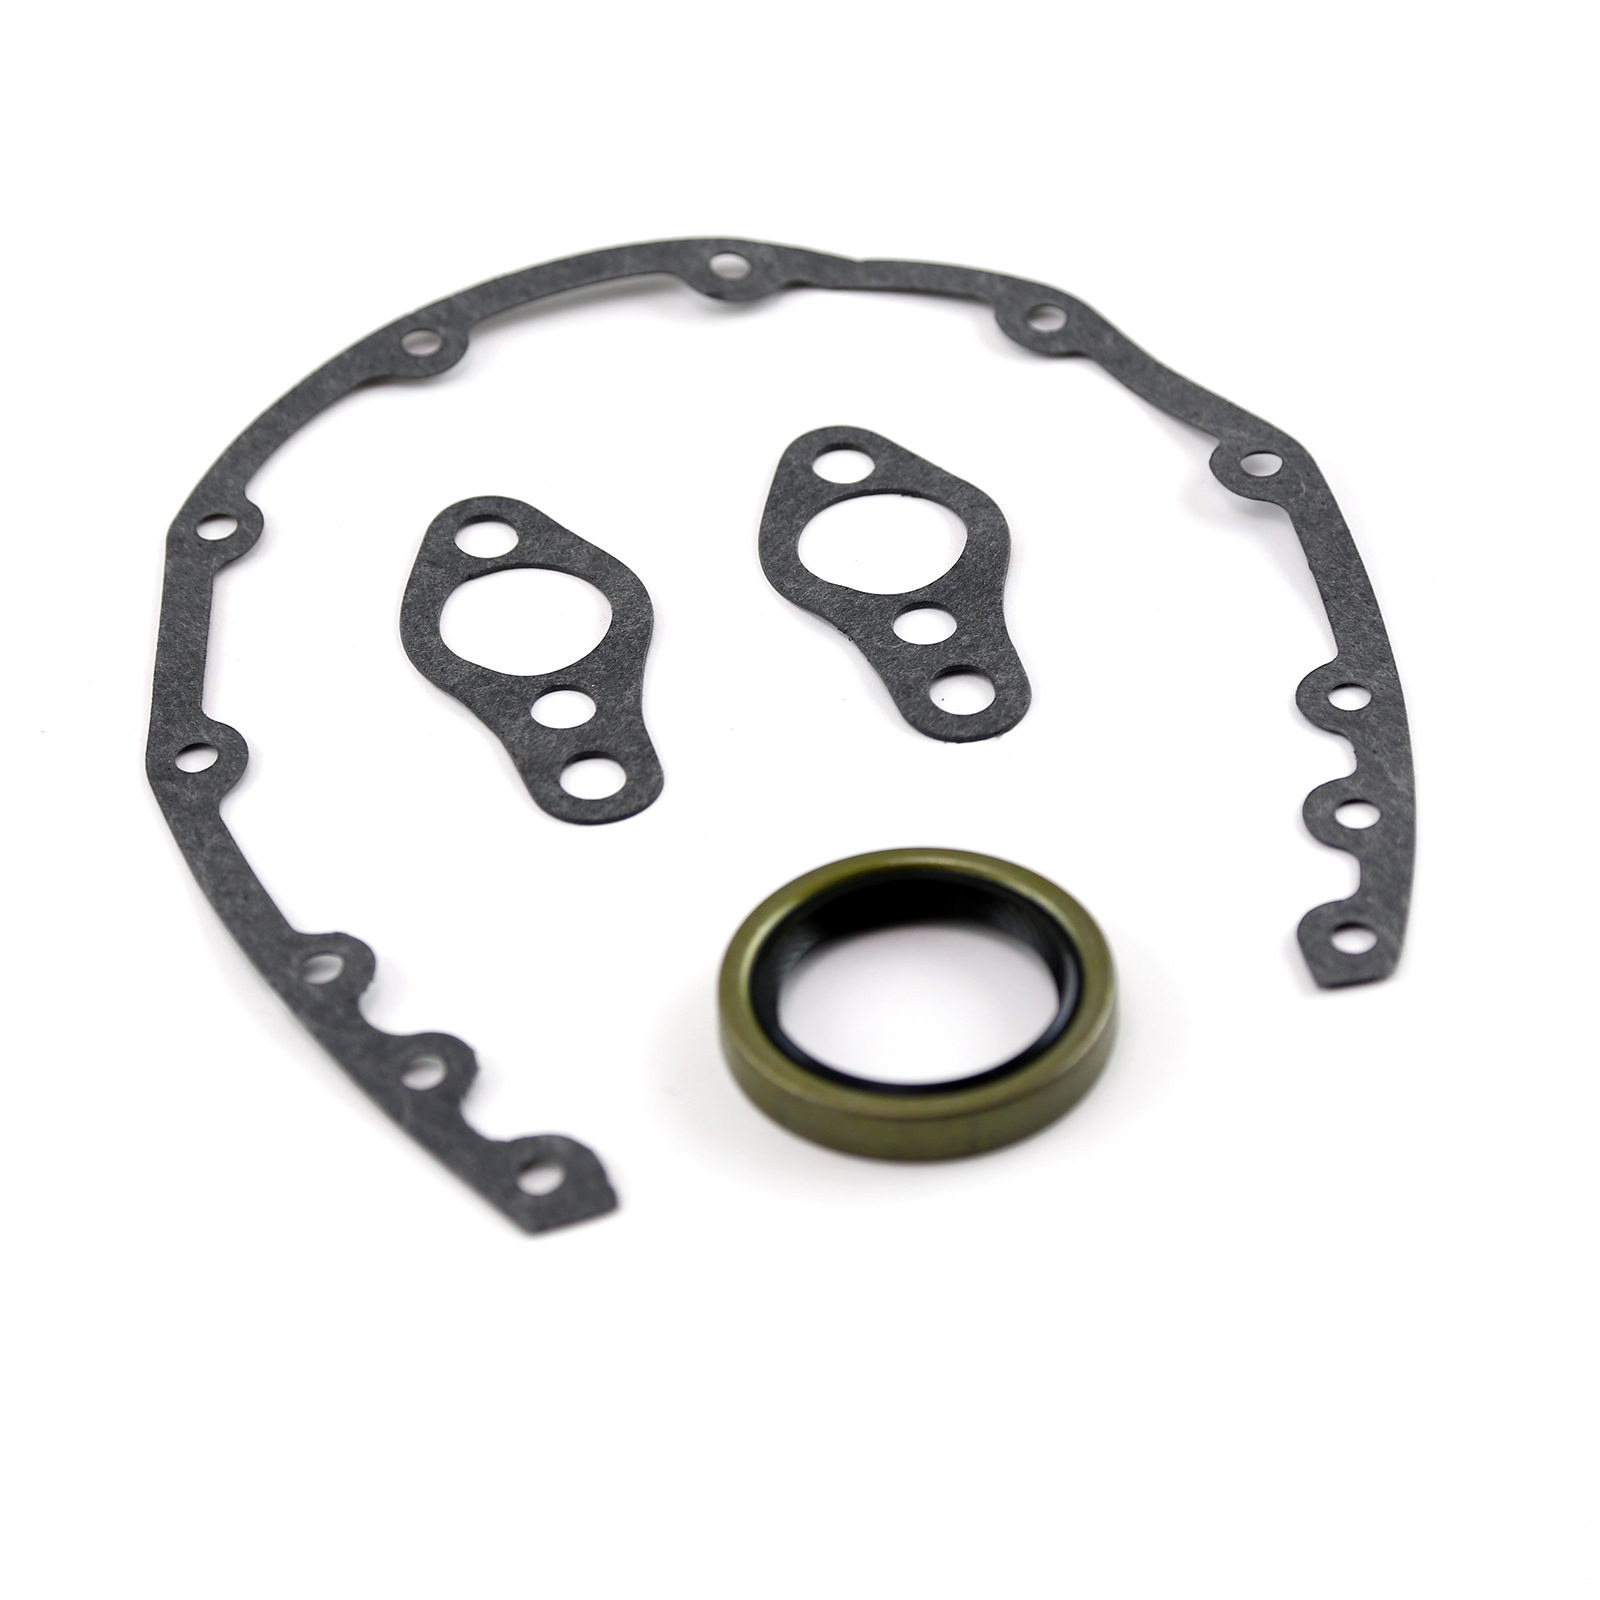 Chevy SBC 350 Timing Cover Gasket Set with Seal